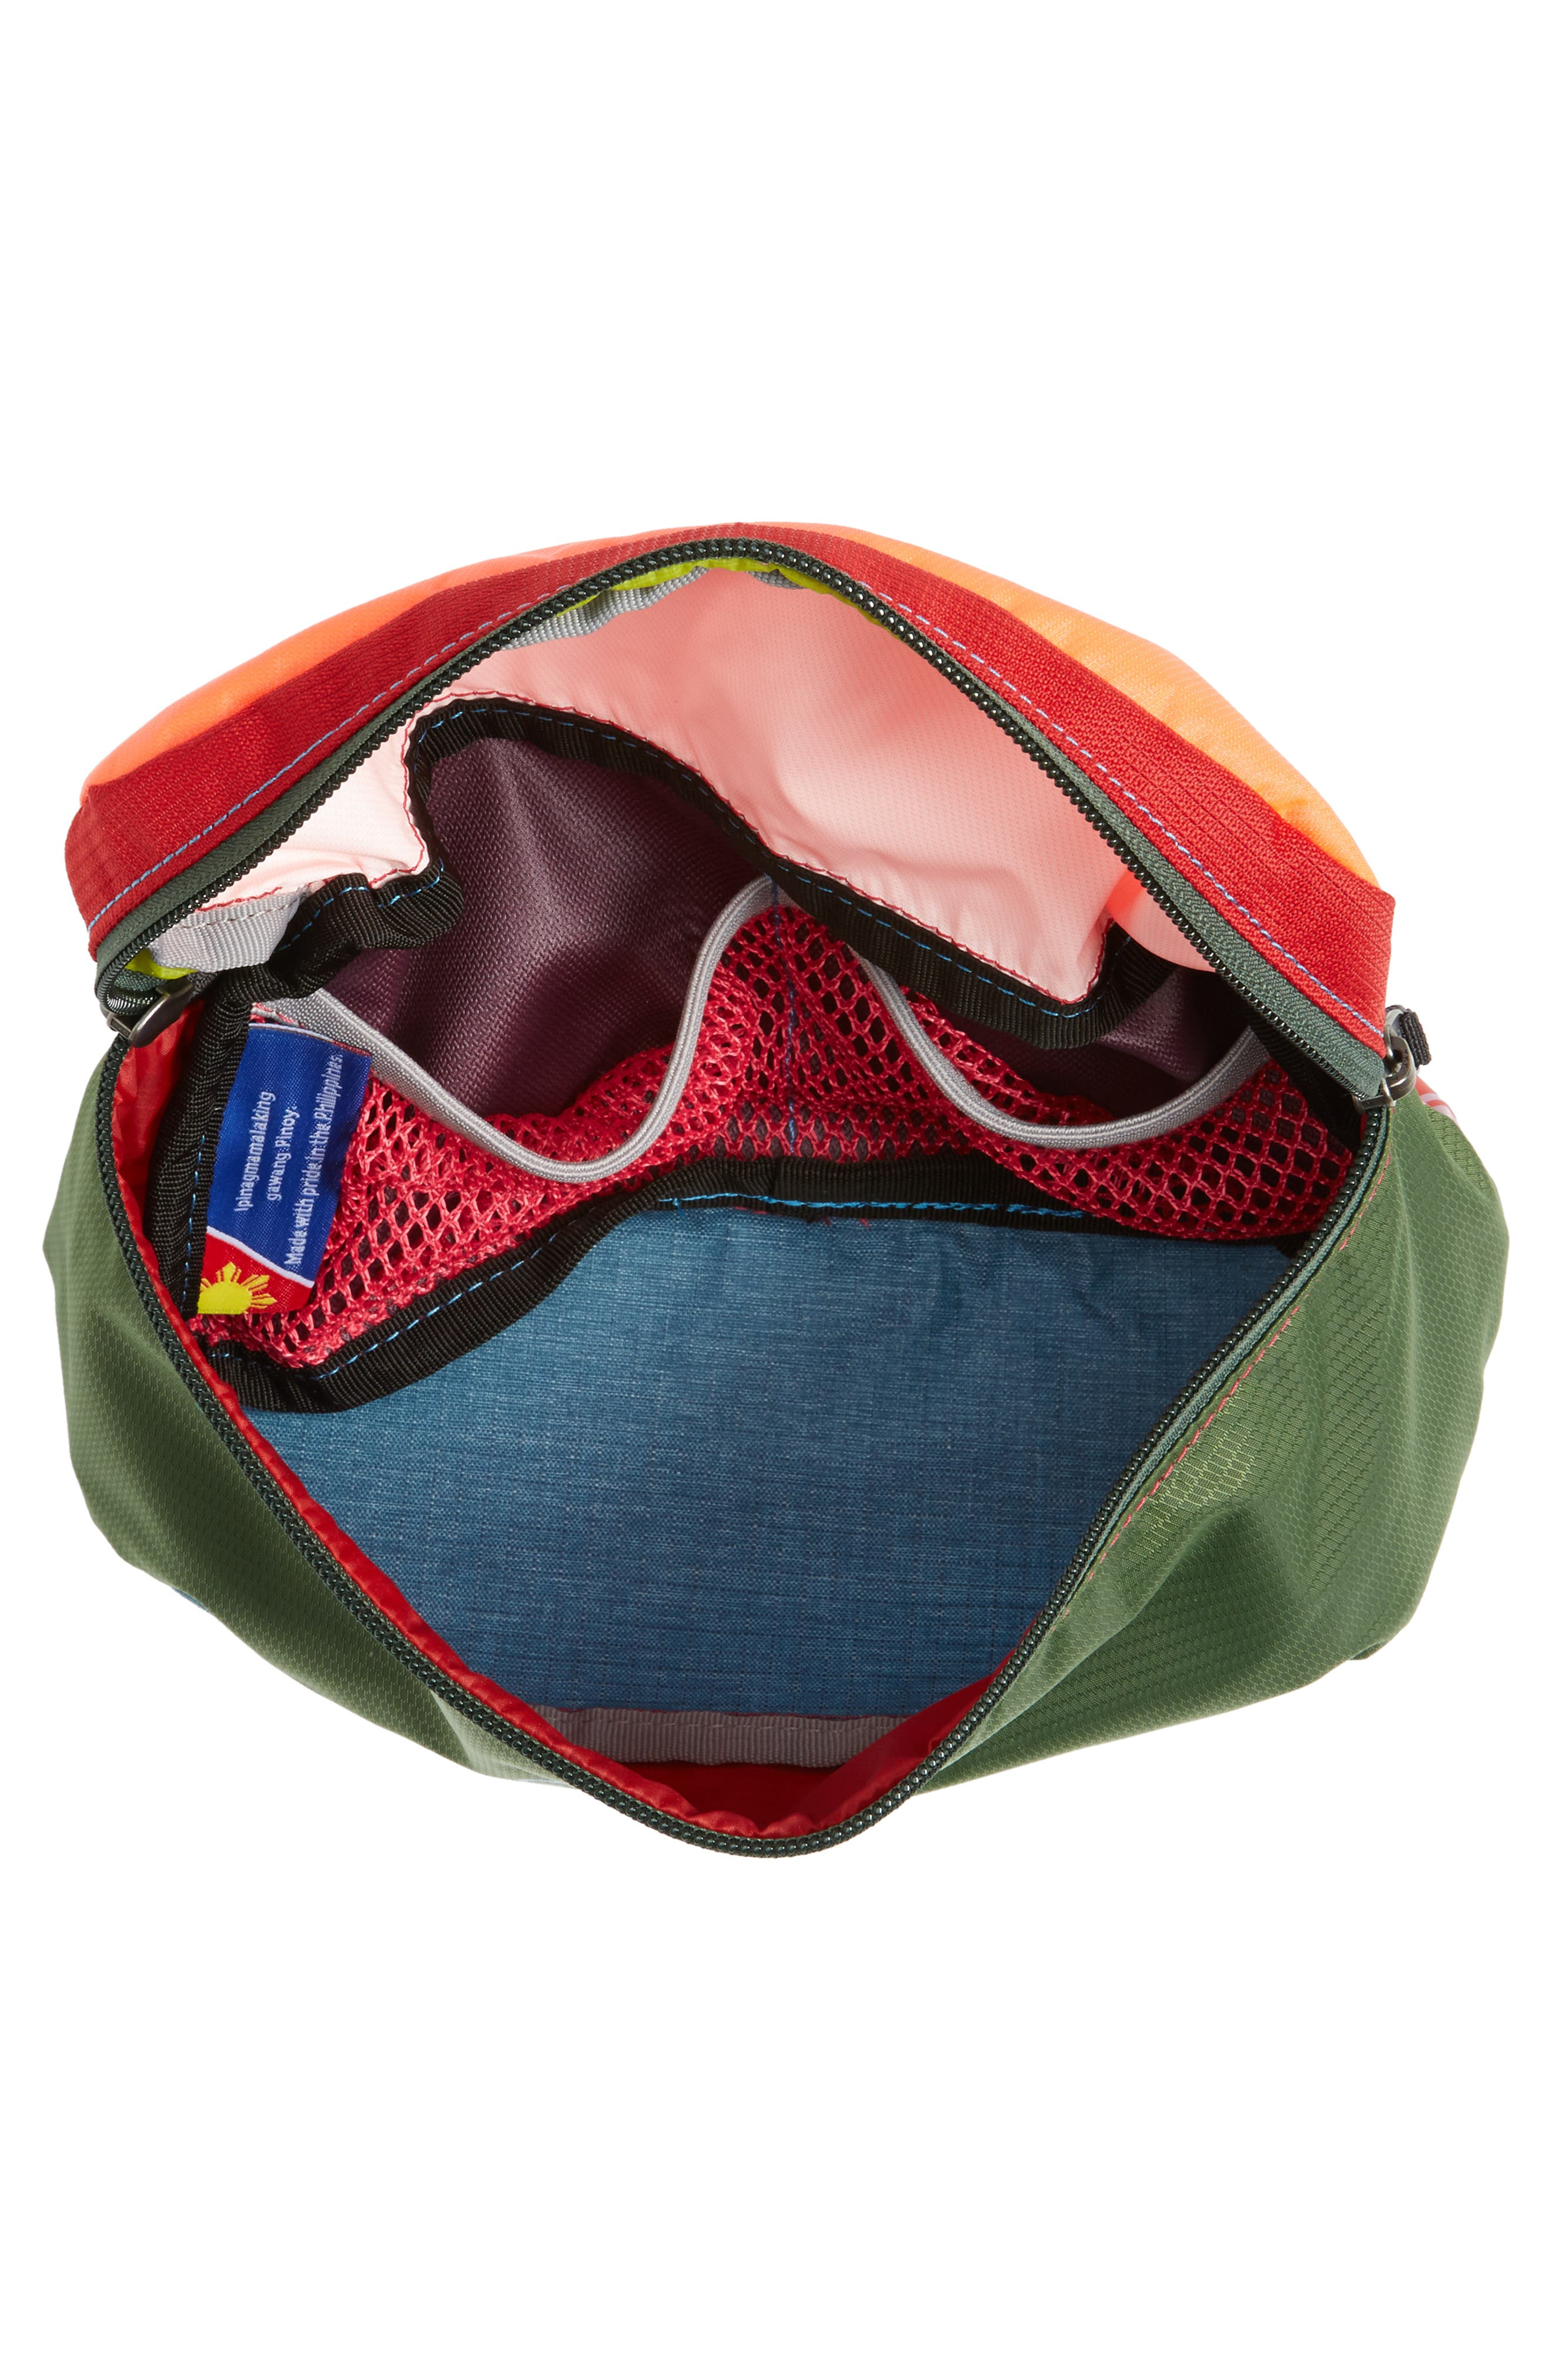 Bataan One of a Kind Duffel Fanny Pack,                             Alternate thumbnail 4, color,